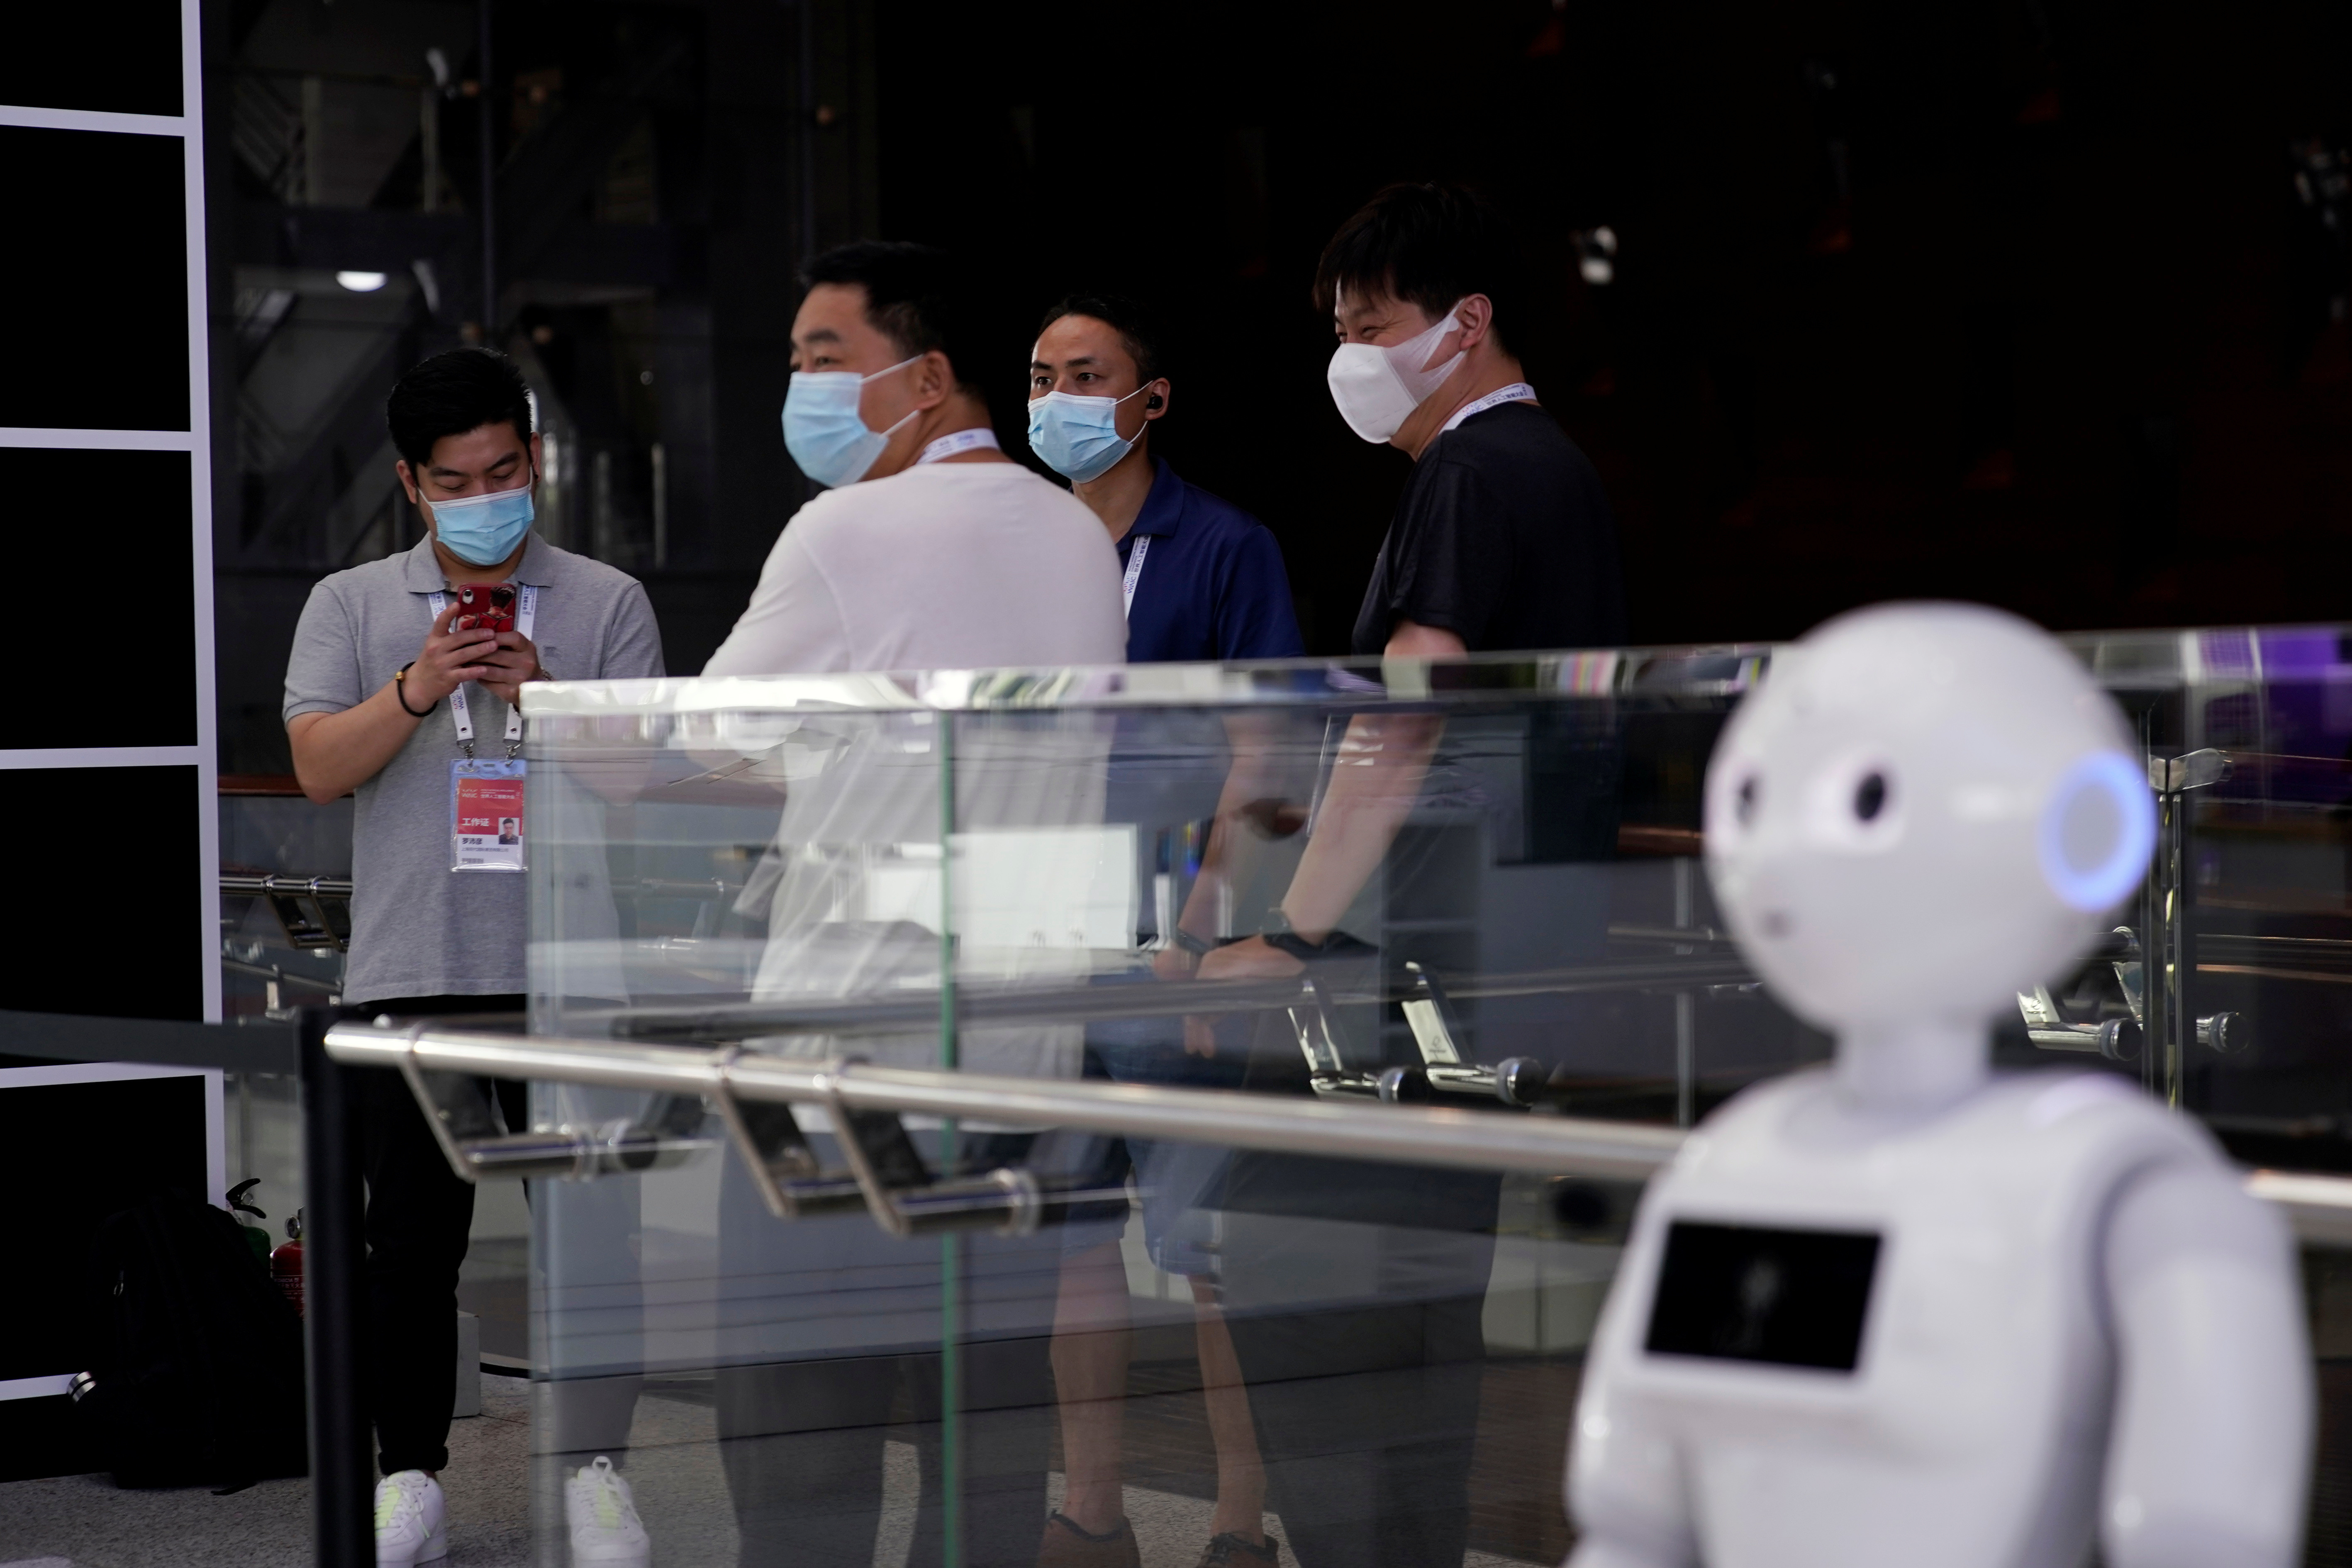 People wearing face masks following the coronavirus disease (COVID-19) outbreak stand near a robot at the venue for the World Artificial Intelligence Conference (WAIC) in Shanghai, China July 9, 2020. REUTERS/Aly Song - RC2EPH9URISA